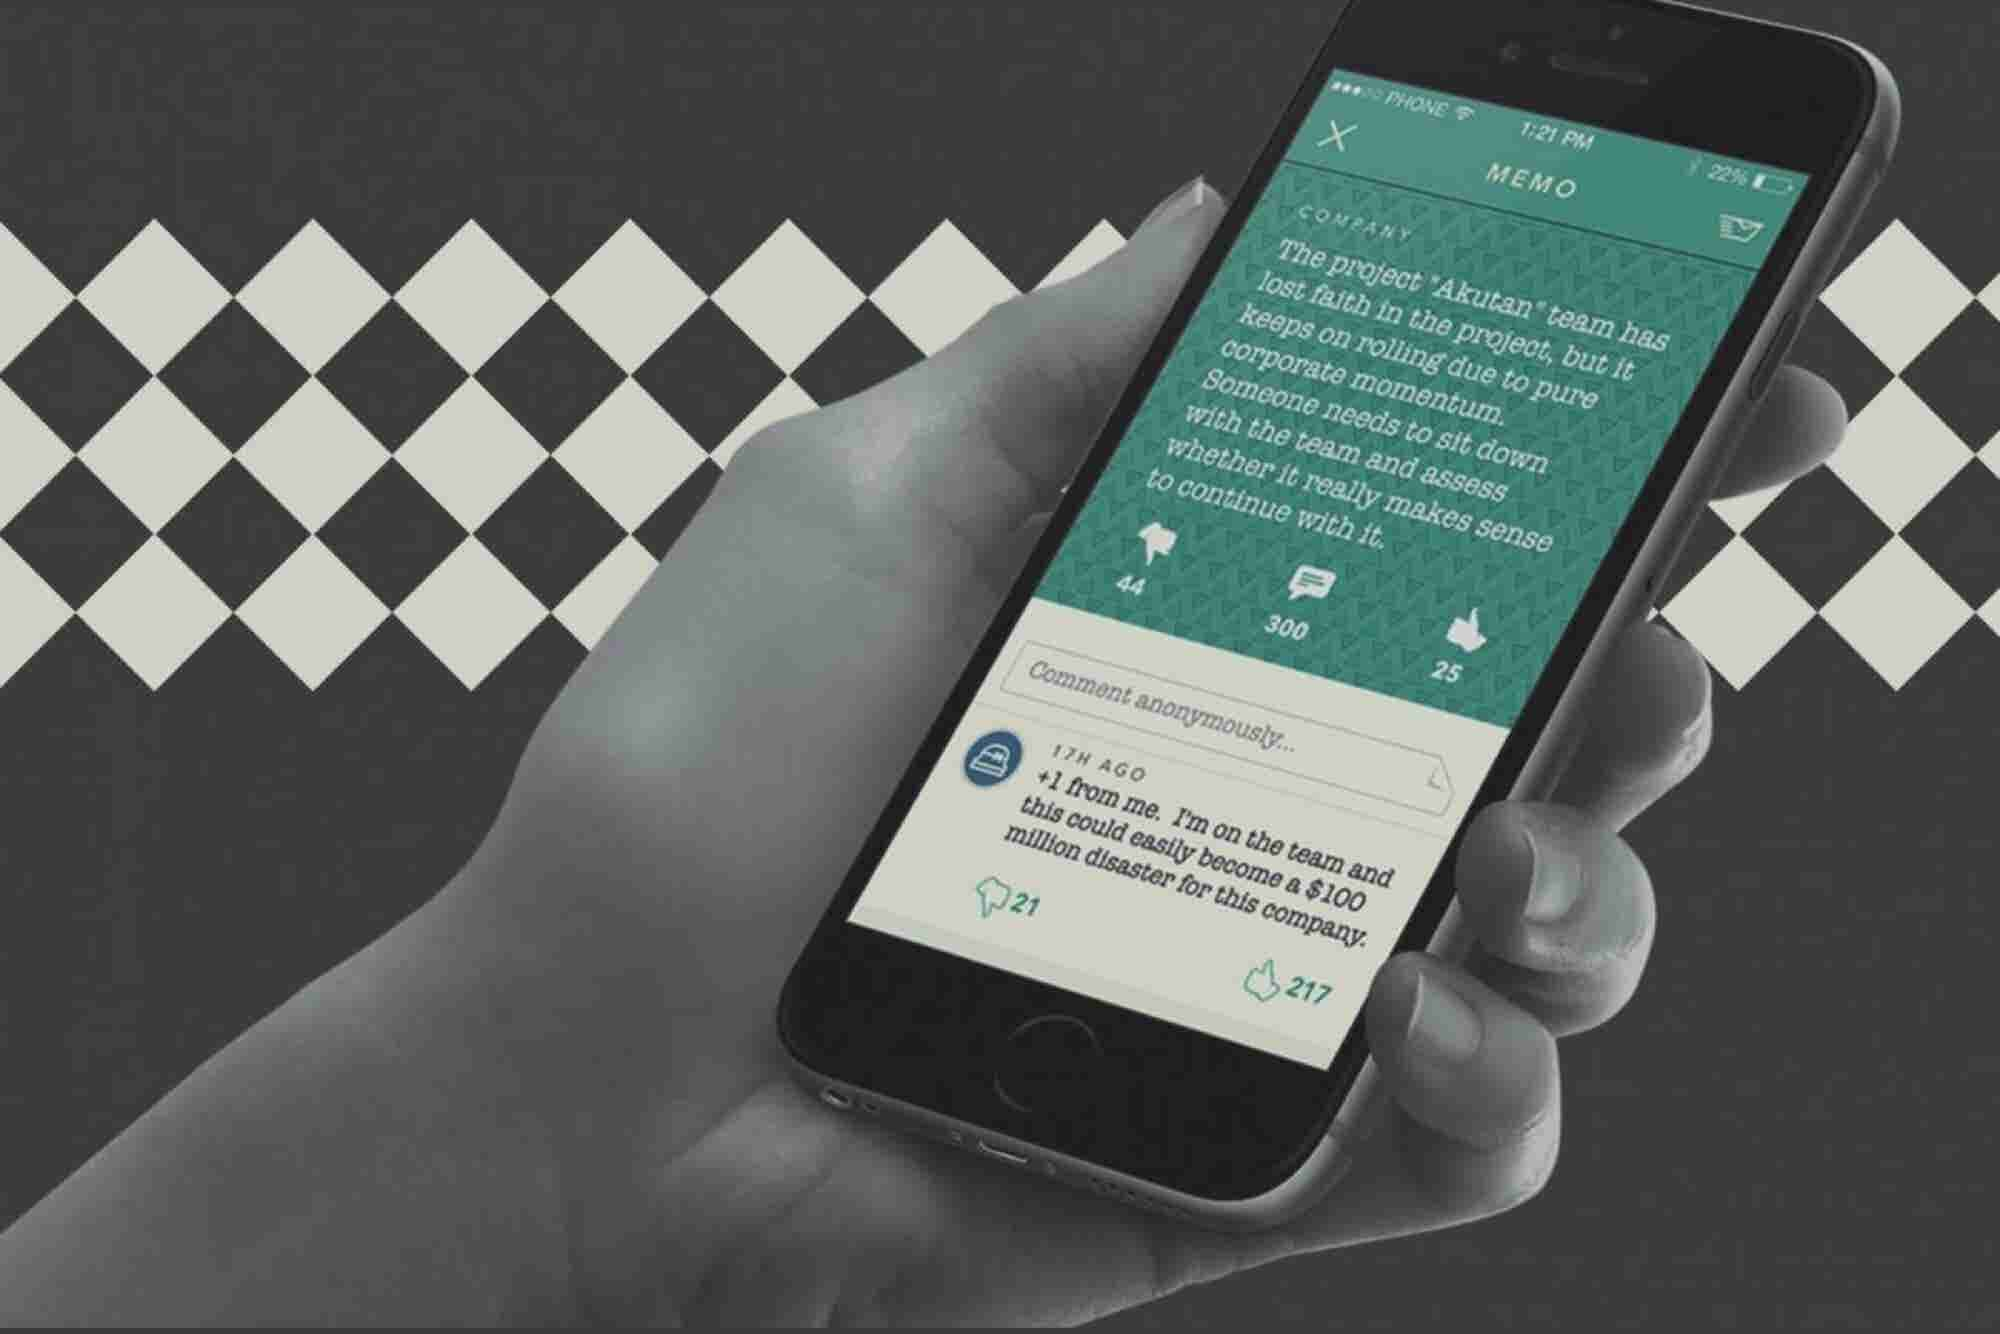 Meet Memo, the Anonymous App That Could Revolutionize the Workplace